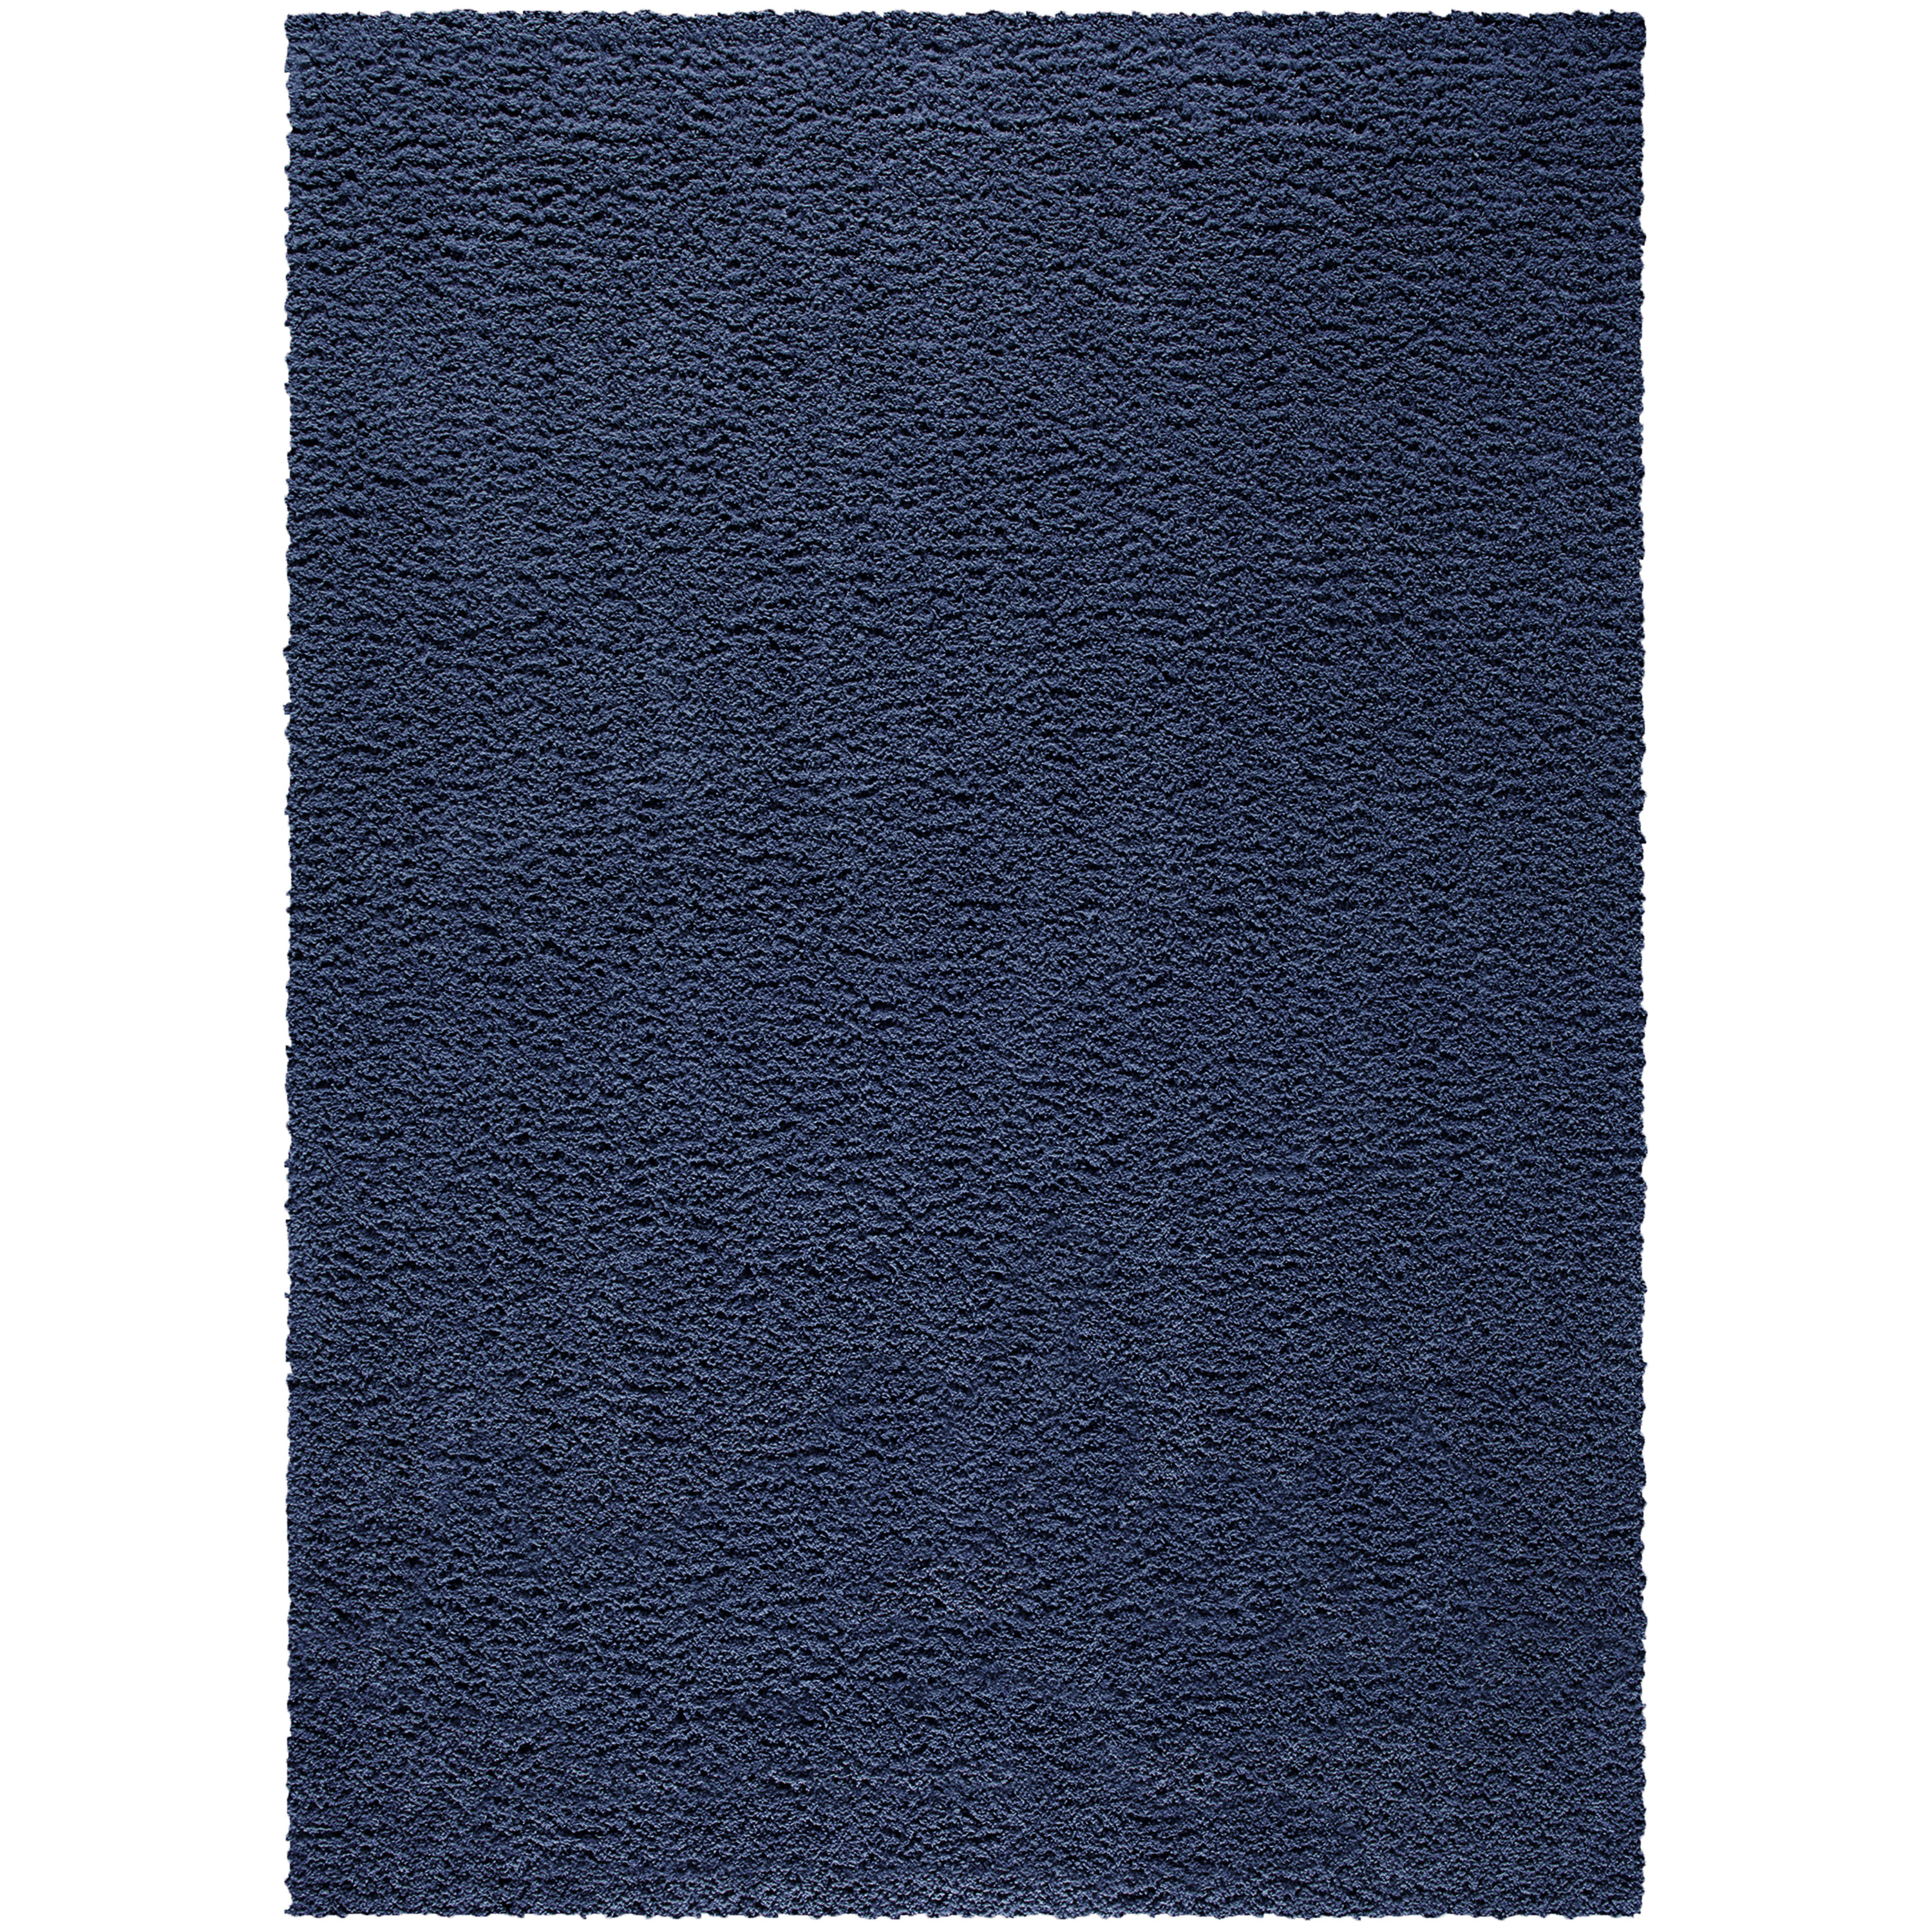 Mainstays Manchester Shag Area Rug or Runner Collection, Multiple Colors and Sizes by Maples Industries, Inc.